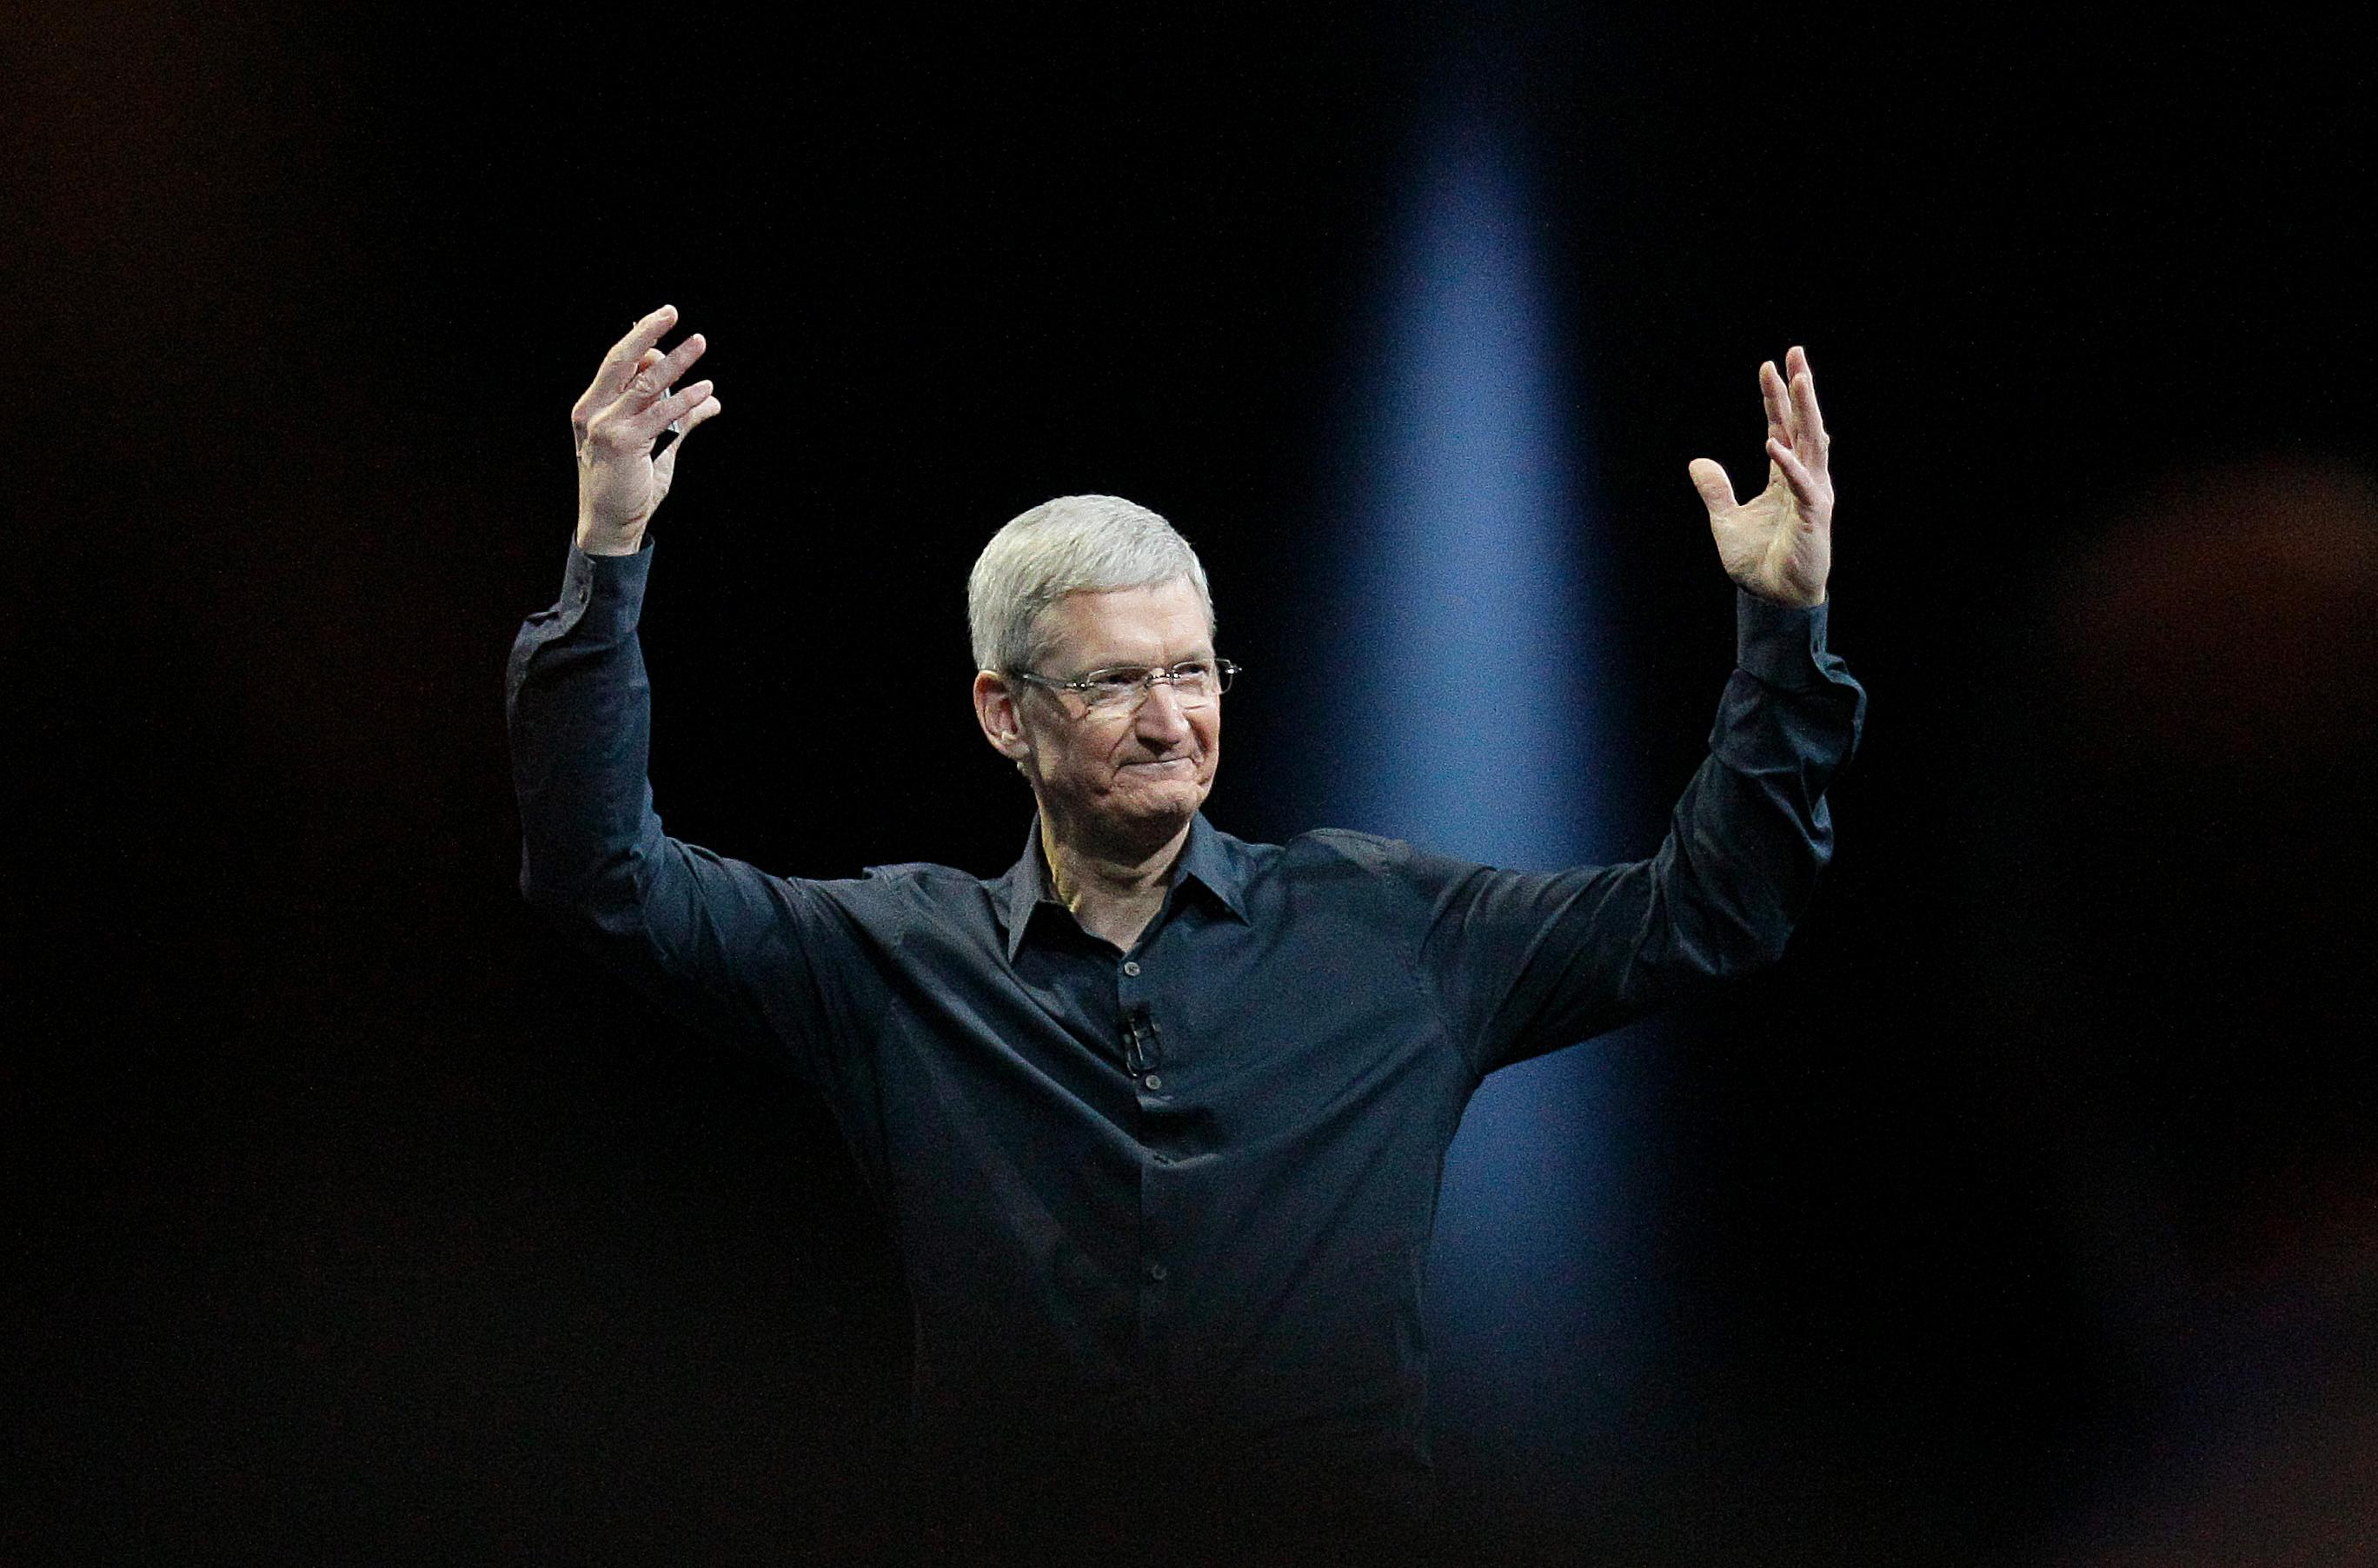 Celebgate Update: Tim Cook Promises to Add Security Alerts ...